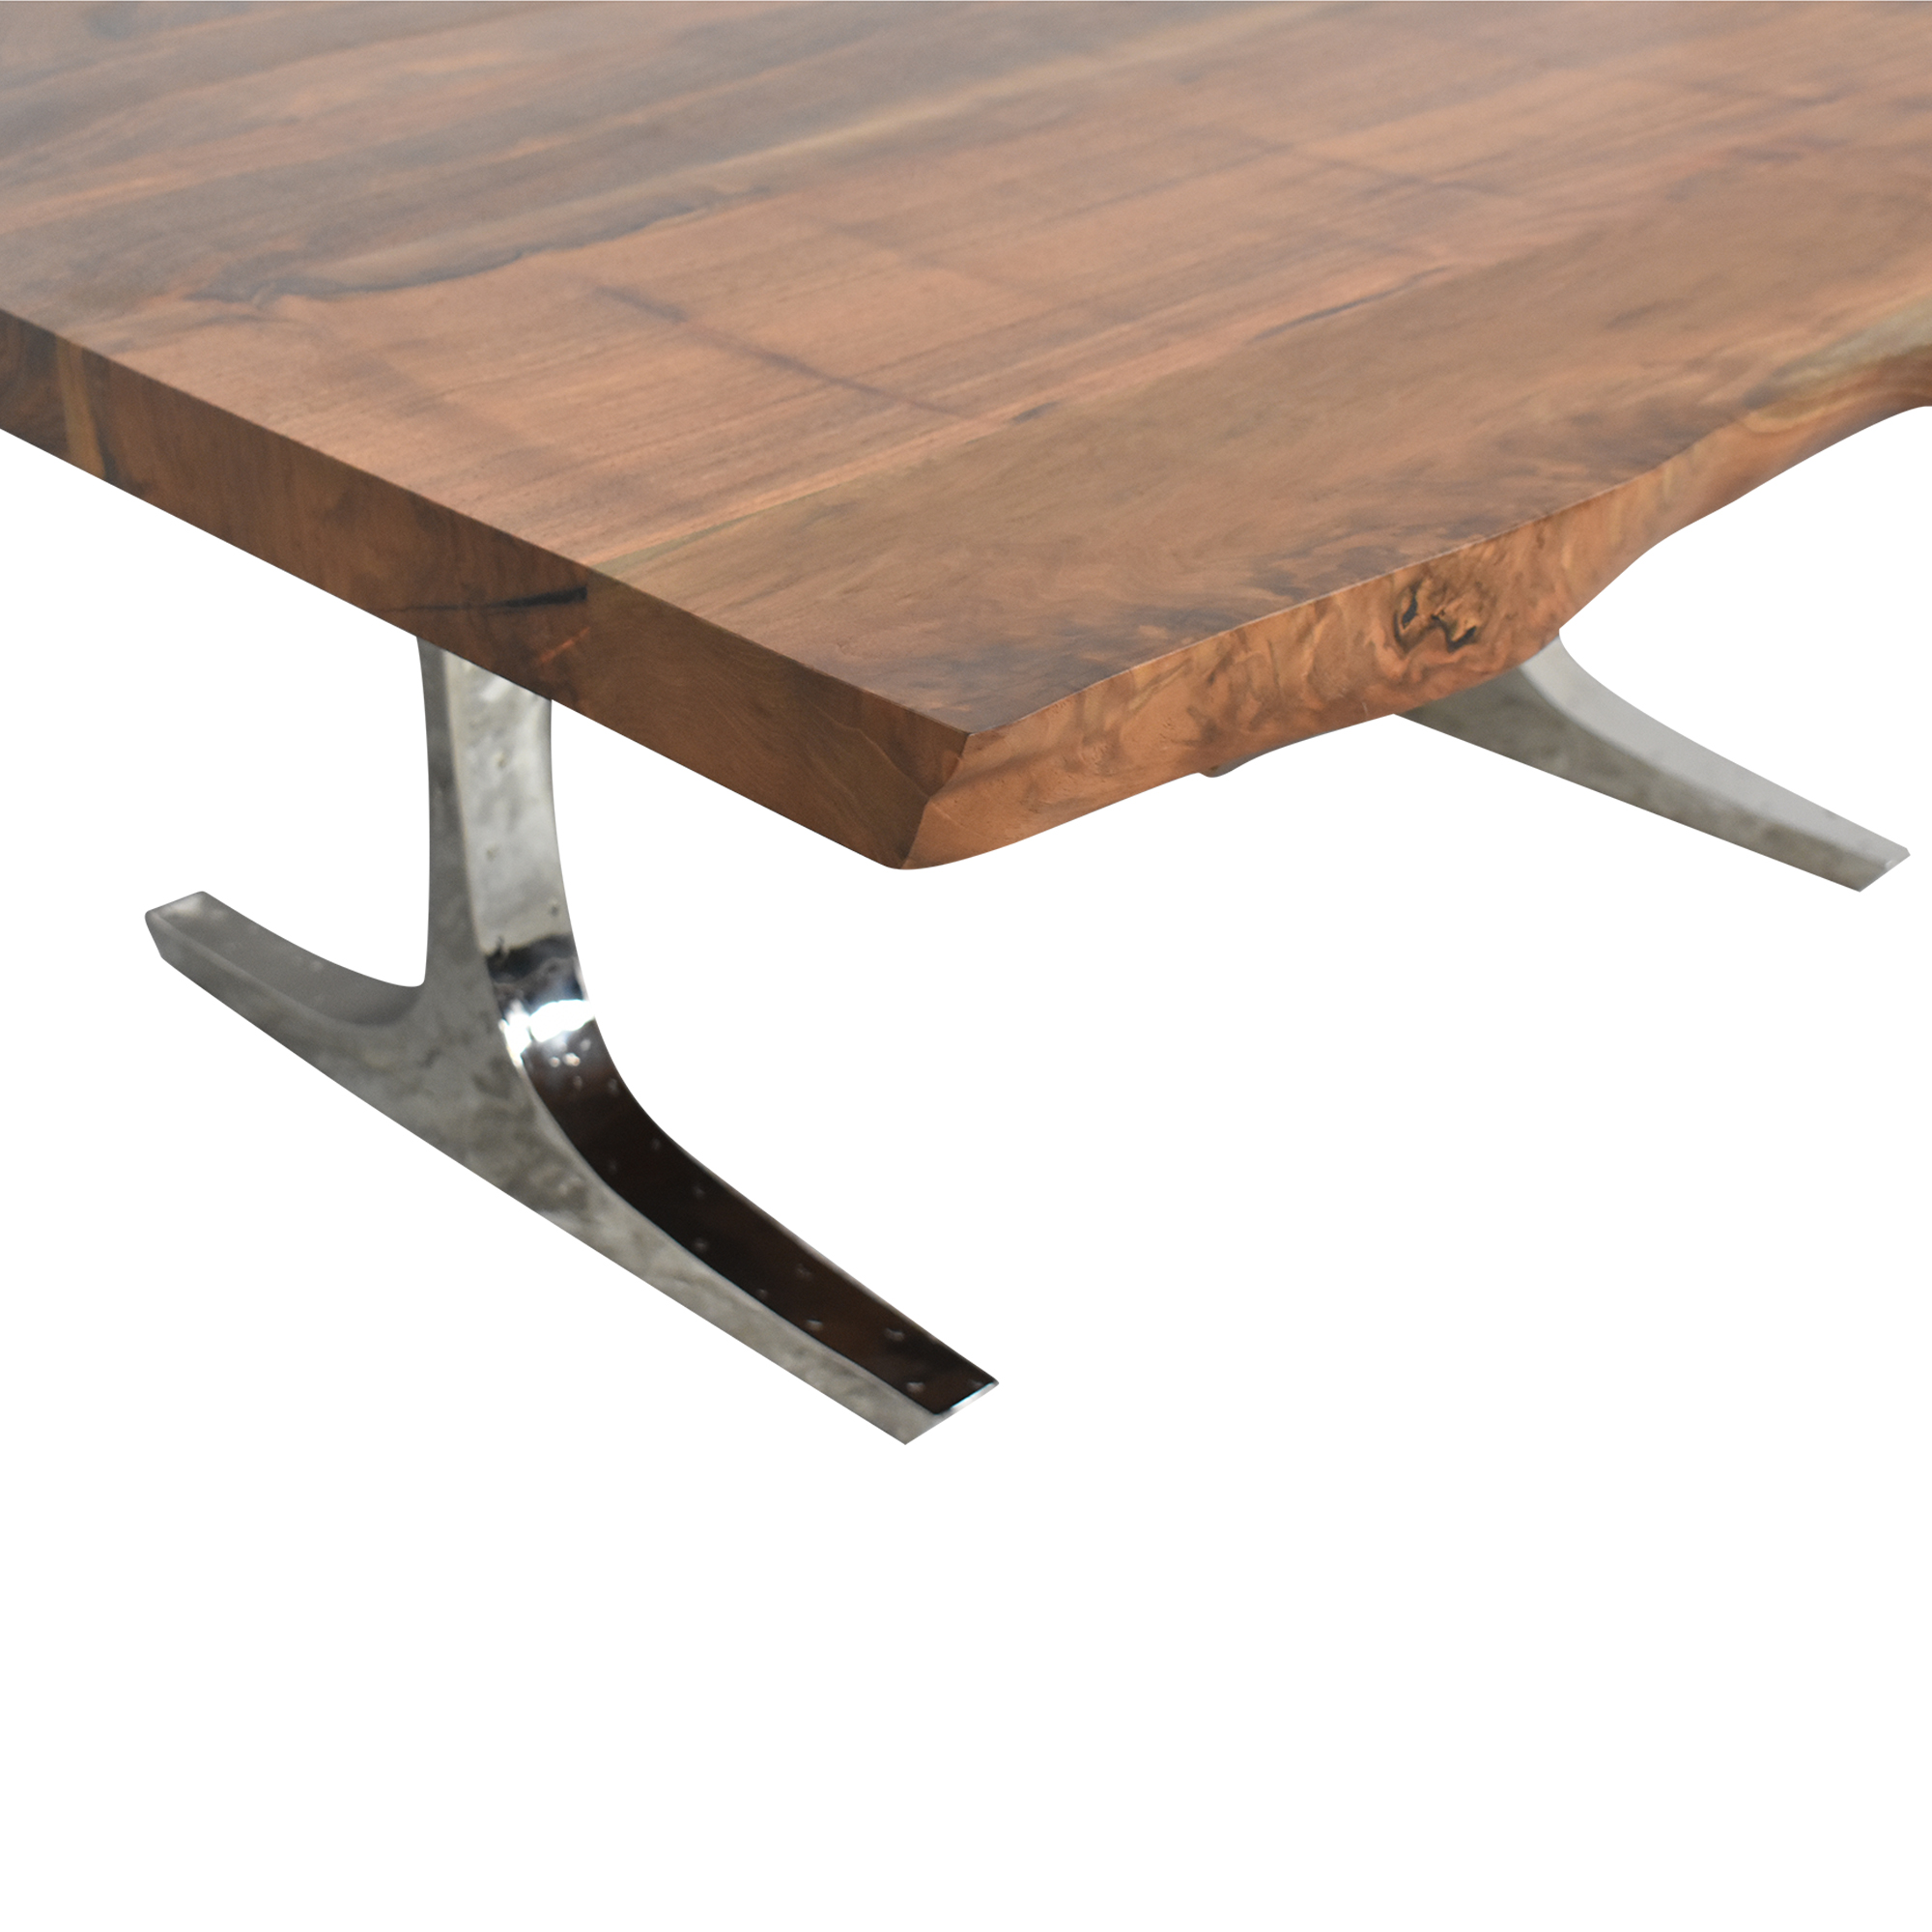 Hudson Furniture & Bedding Hudson Furniture Live Edge Dining Table brown and silver